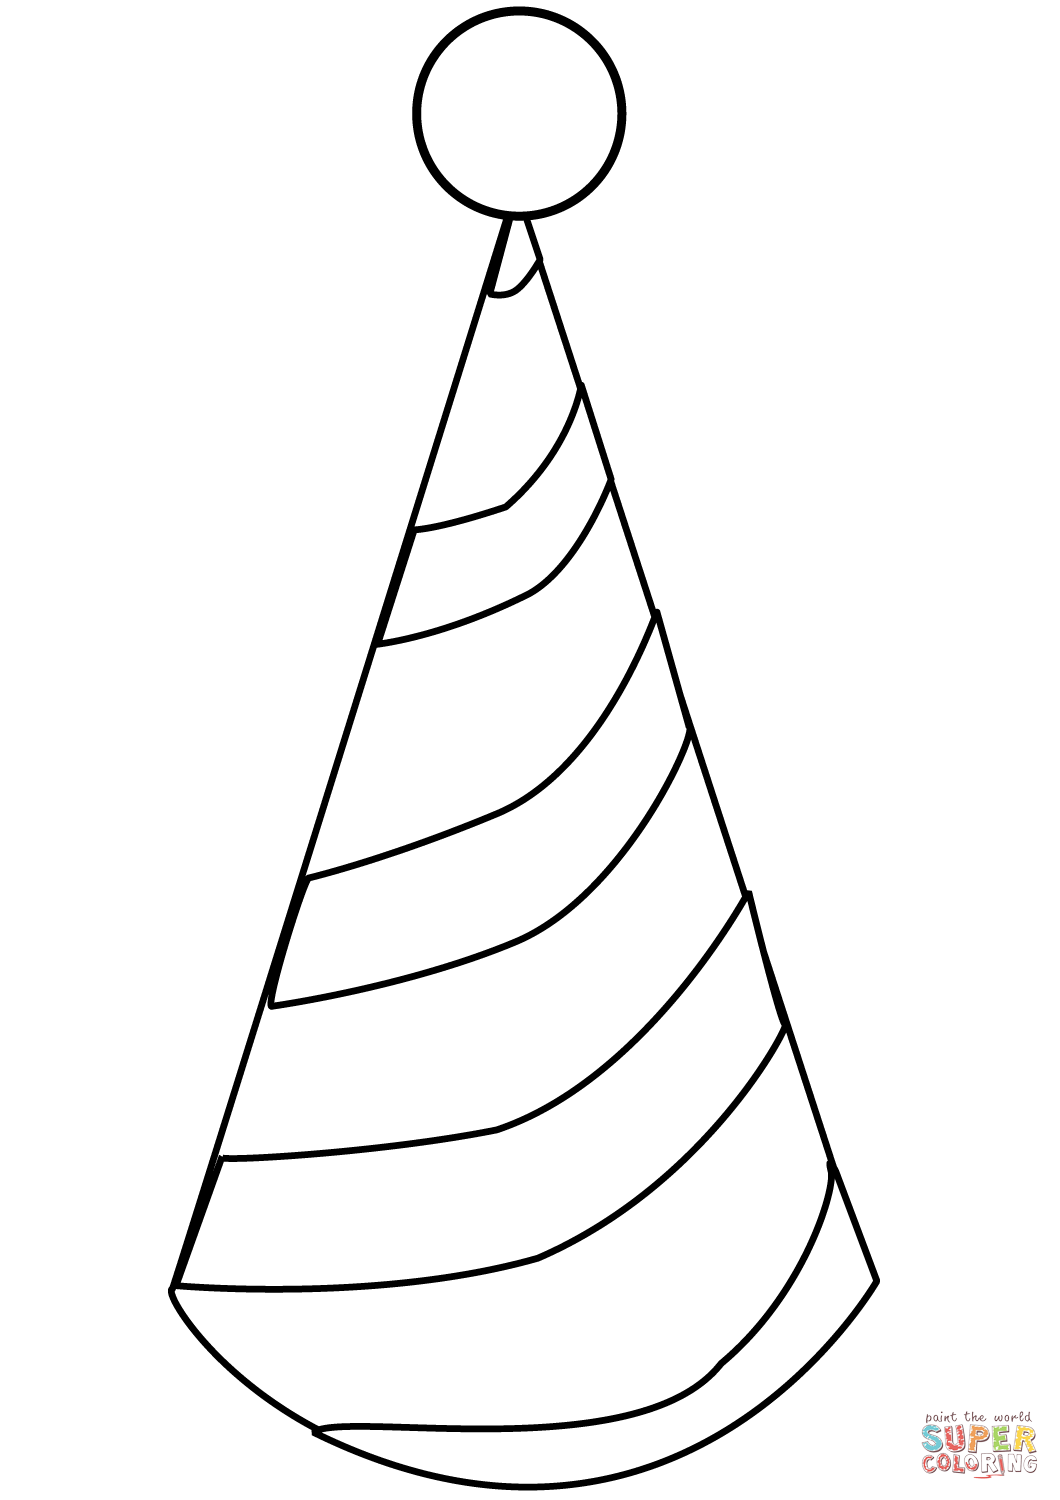 Party Hat Clipart Black And White Party Hat Coloring Page Free Printable Coloring Pages